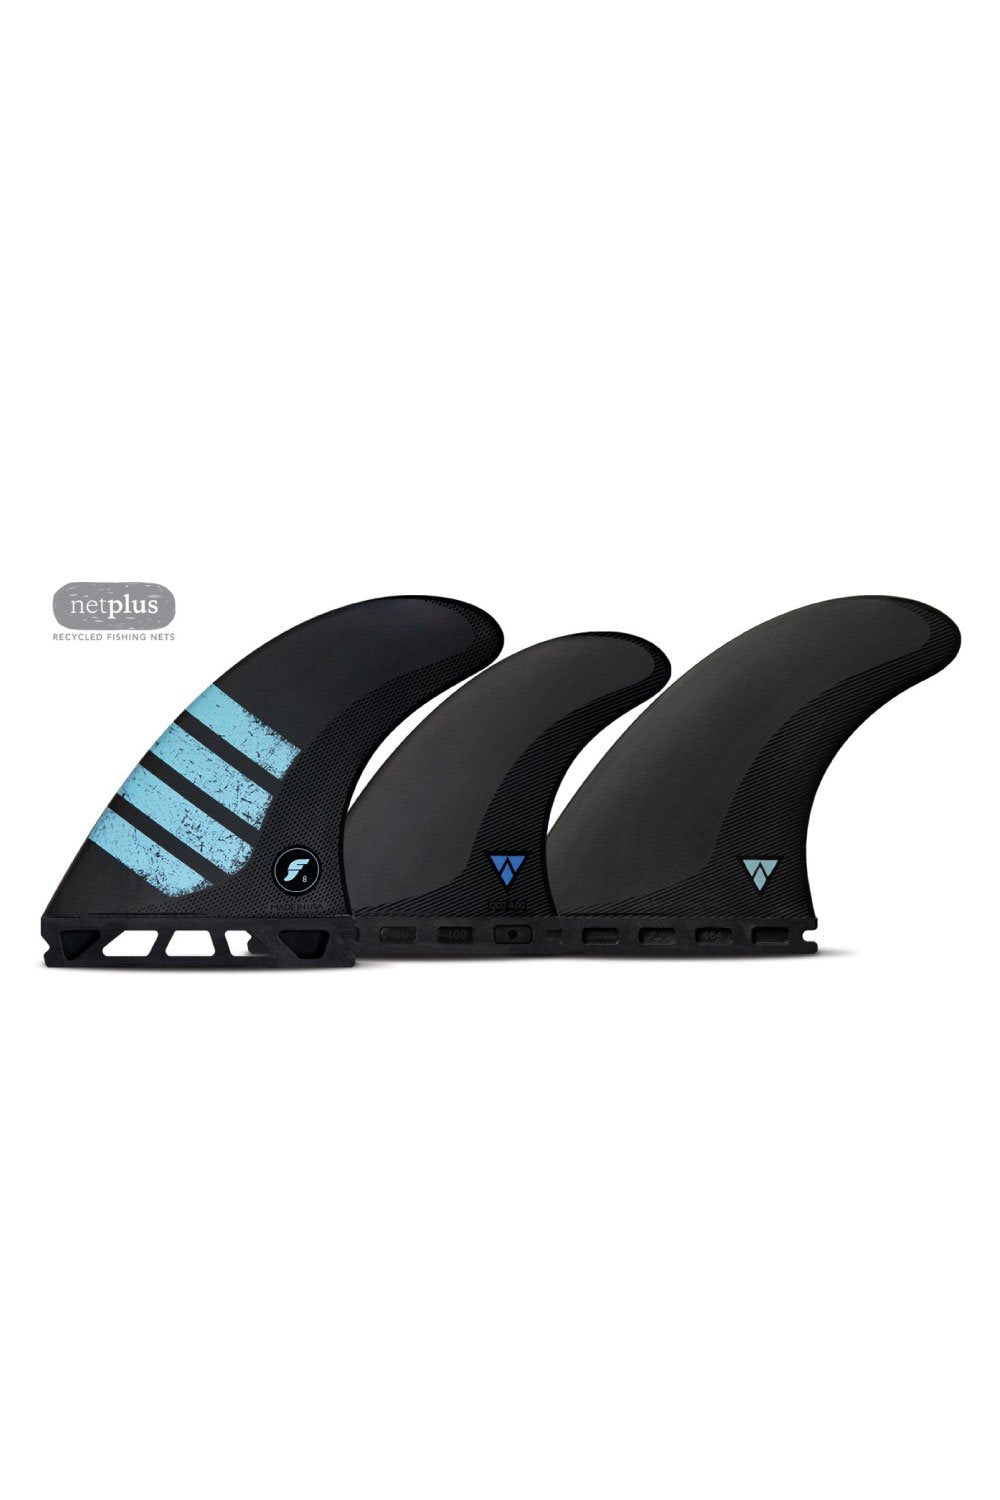 Futures F8 Alpha Carbon 5 Fin Set